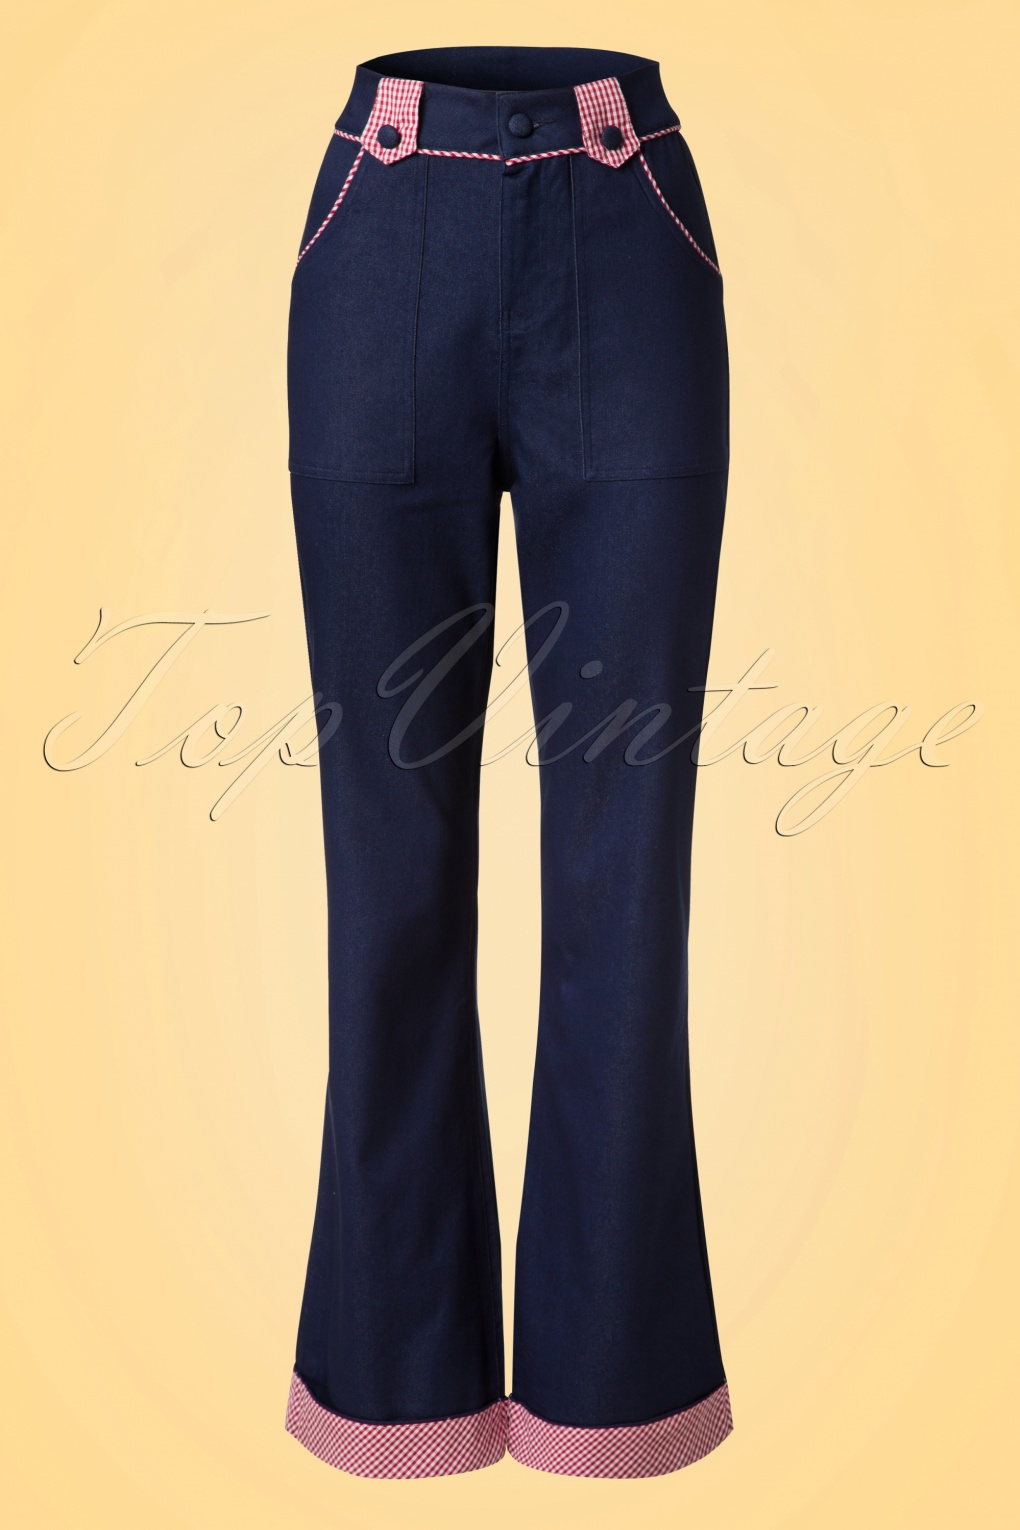 Retro Pants & Jeans 50s Jadore Trousers in Navy £43.94 AT vintagedancer.com